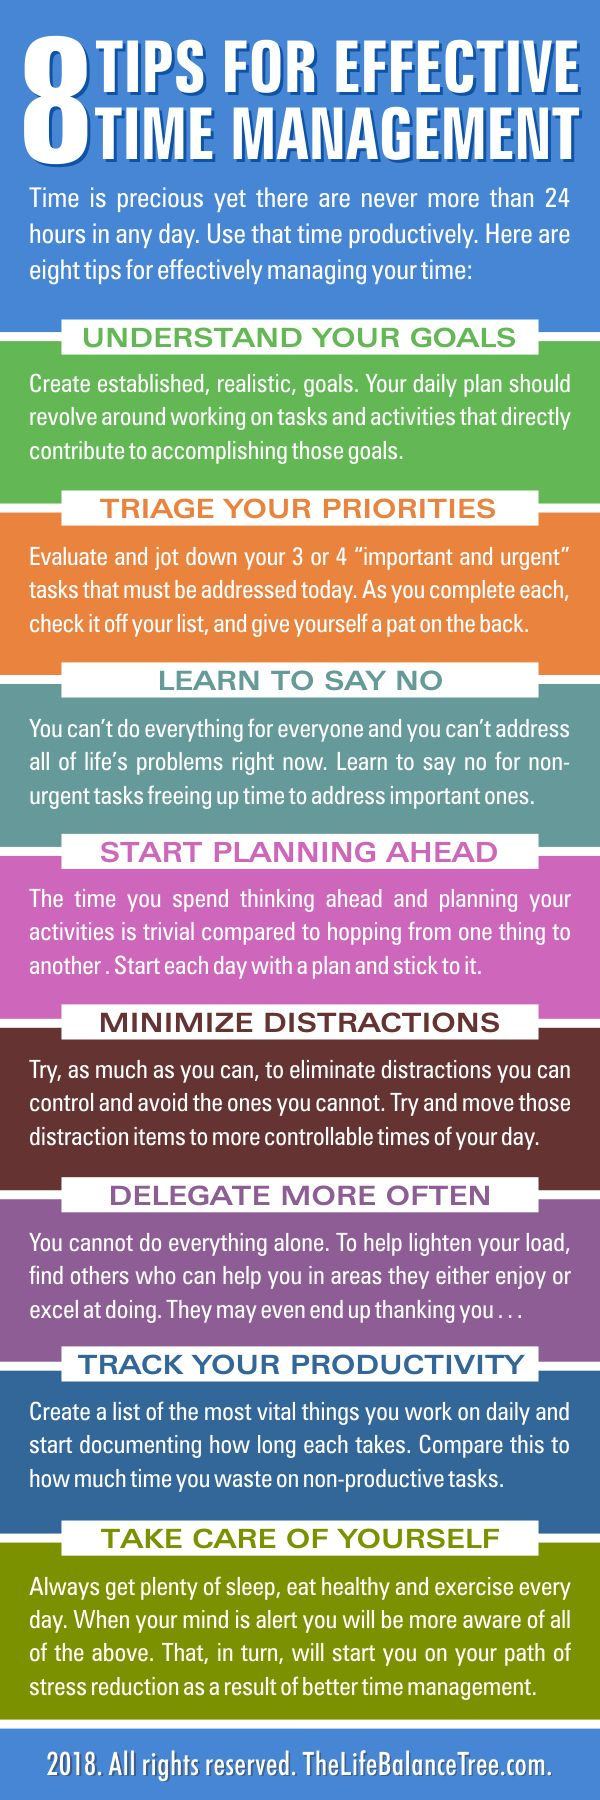 67 Time Management Ideas Time Management Self Improvement Management